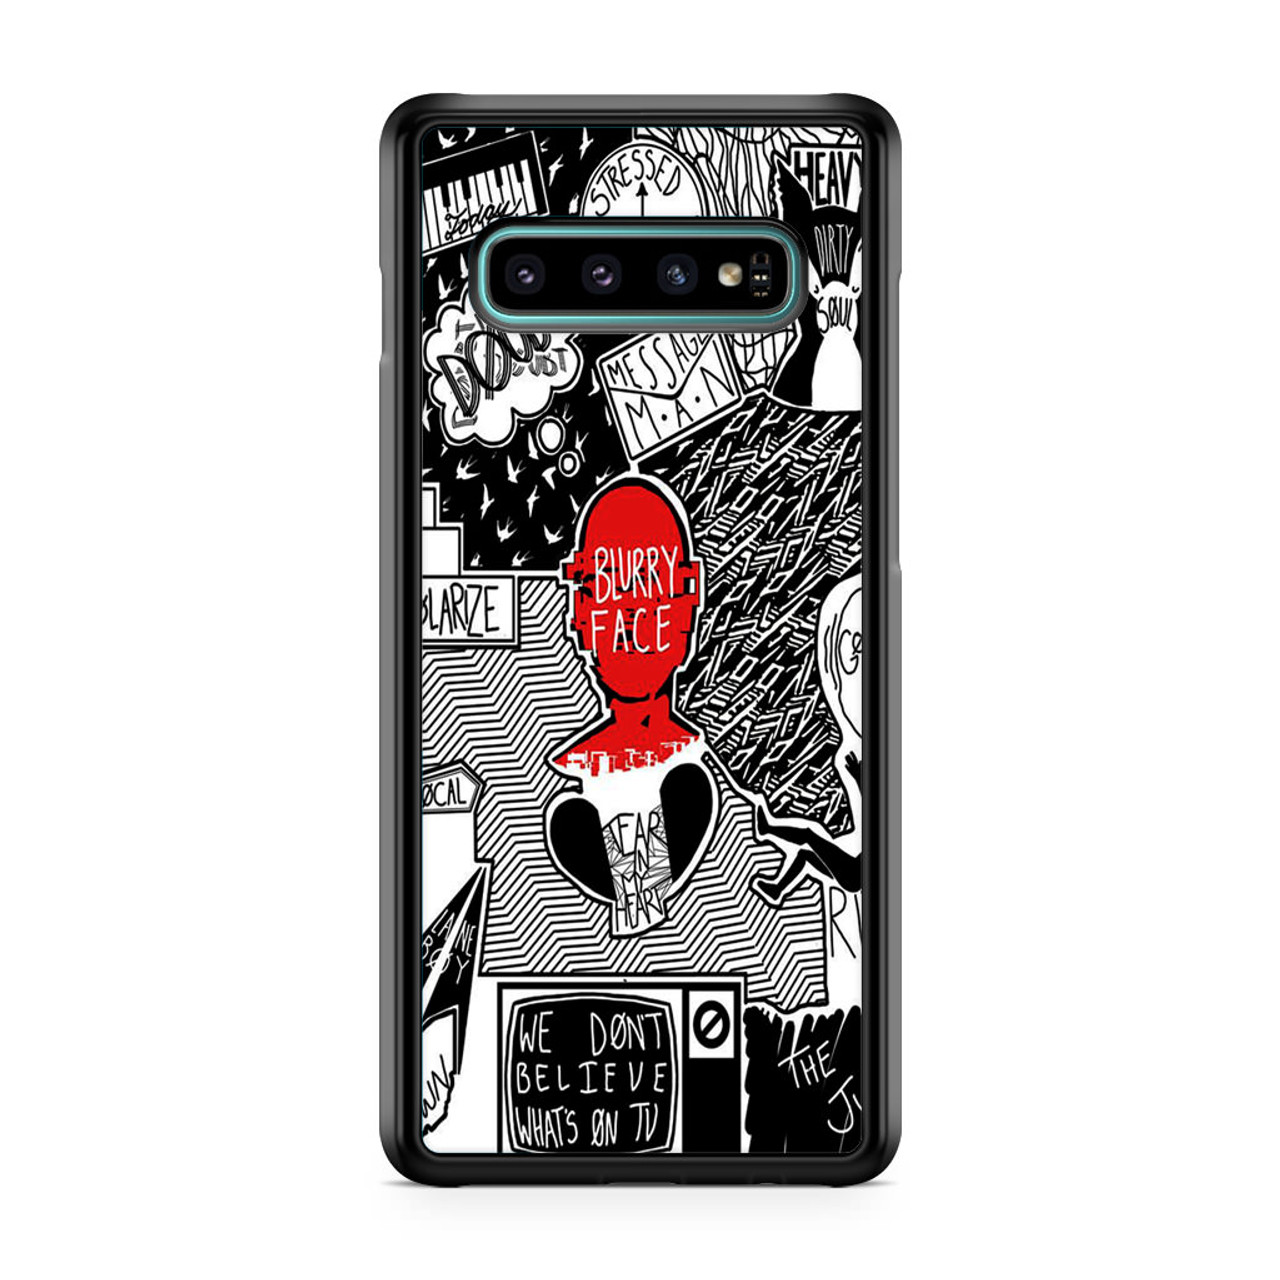 Polarize twenty ne pilts iphone case